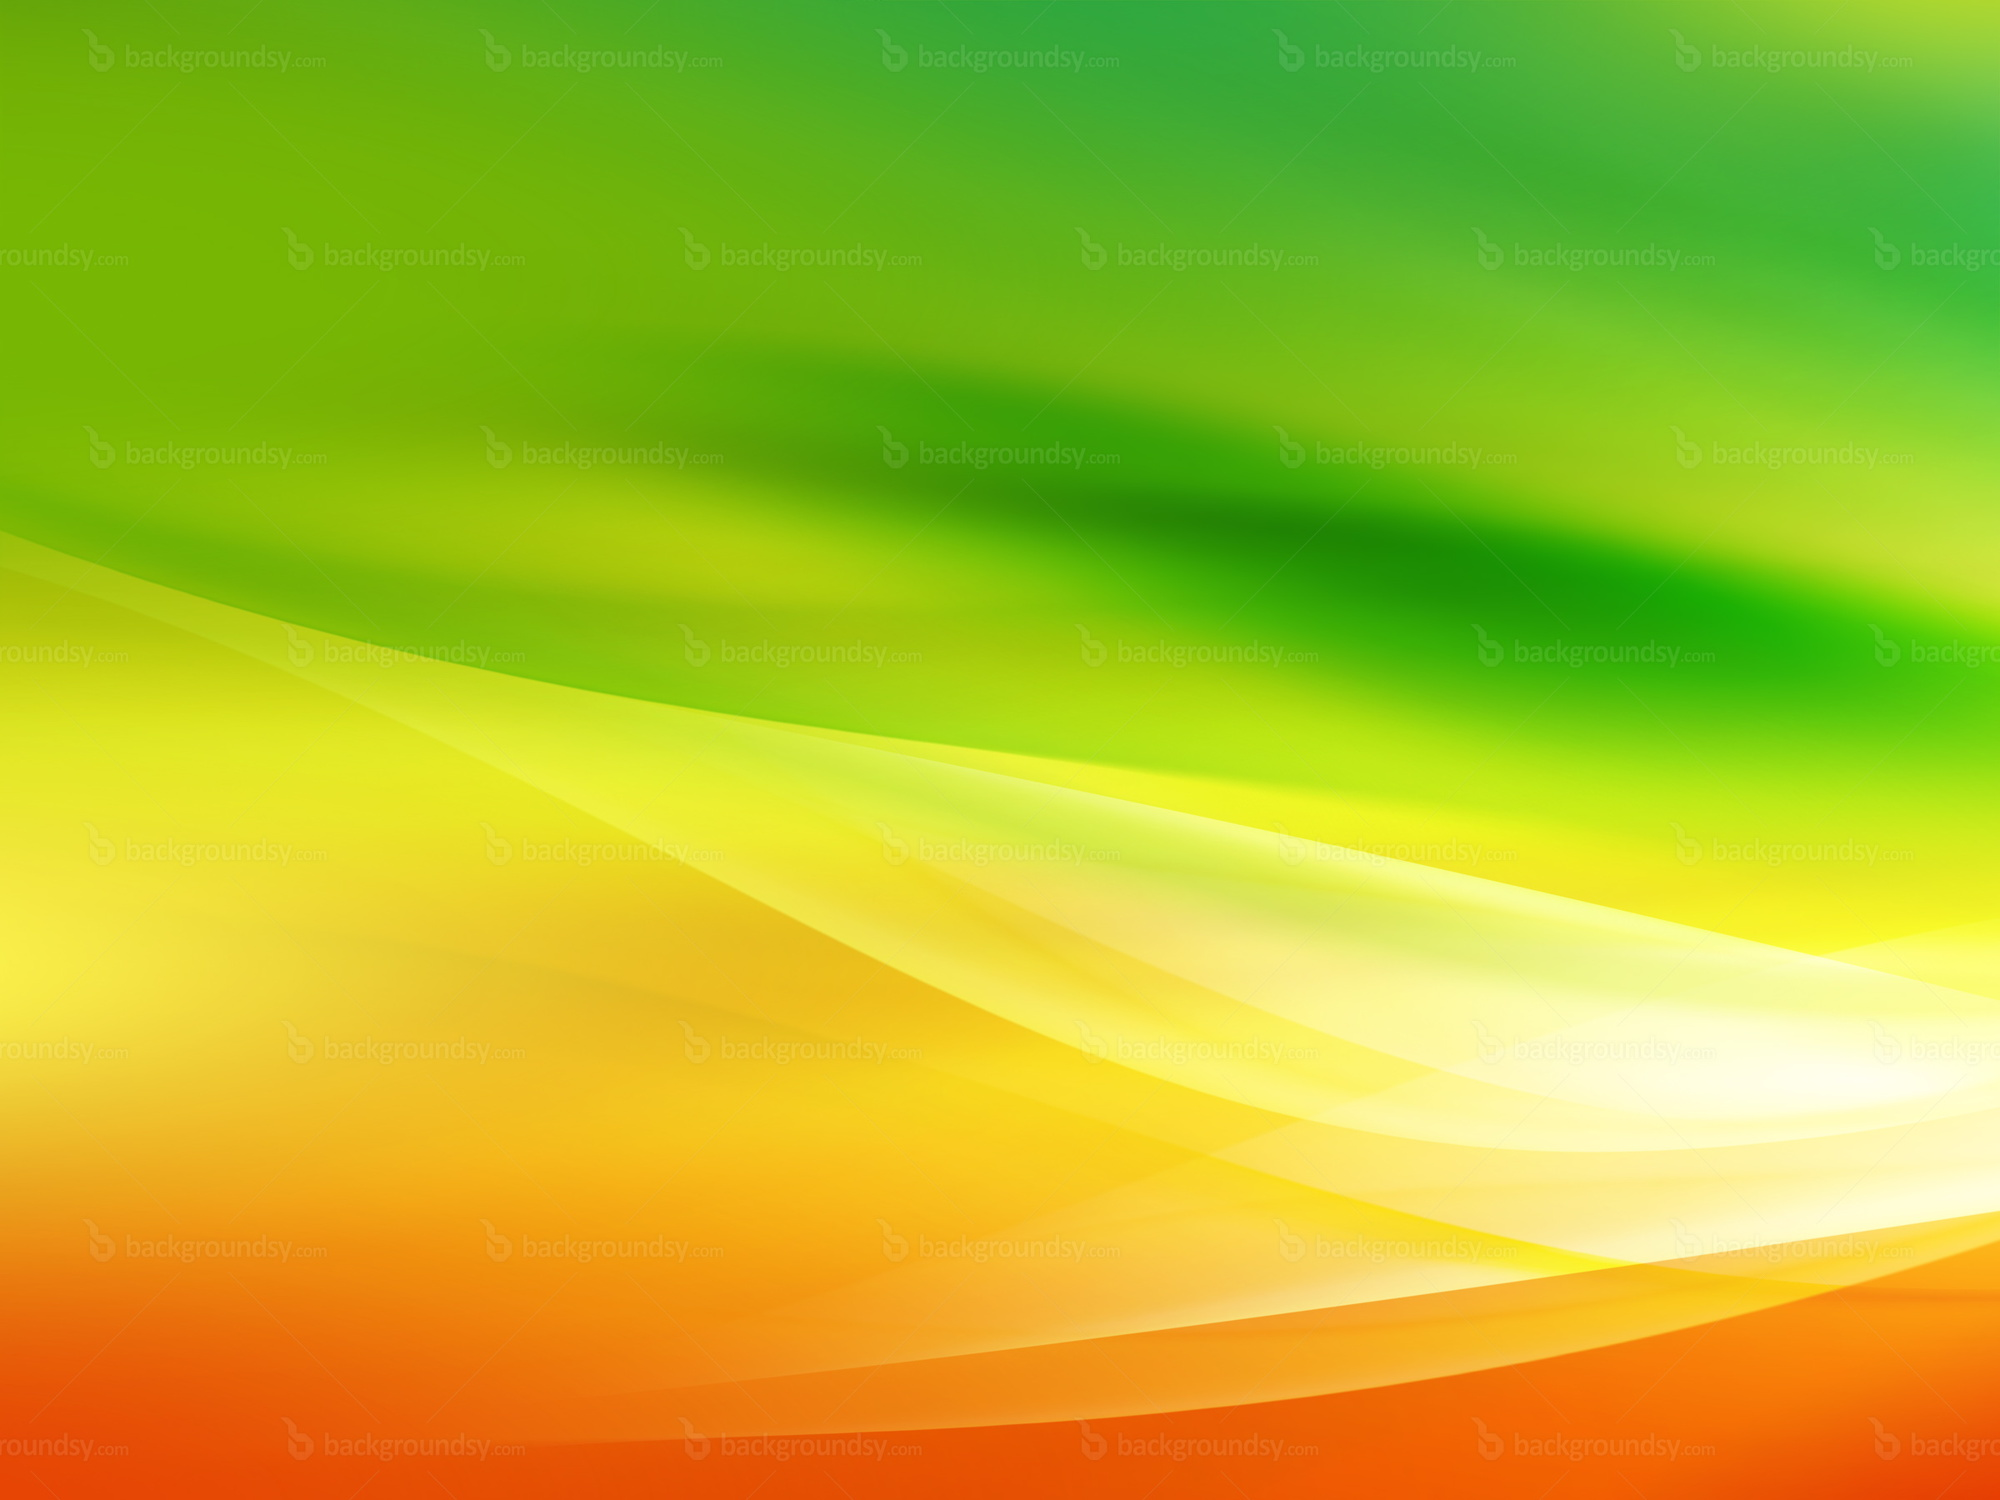 Green Yellow Background Images Green And Yellow Abstract